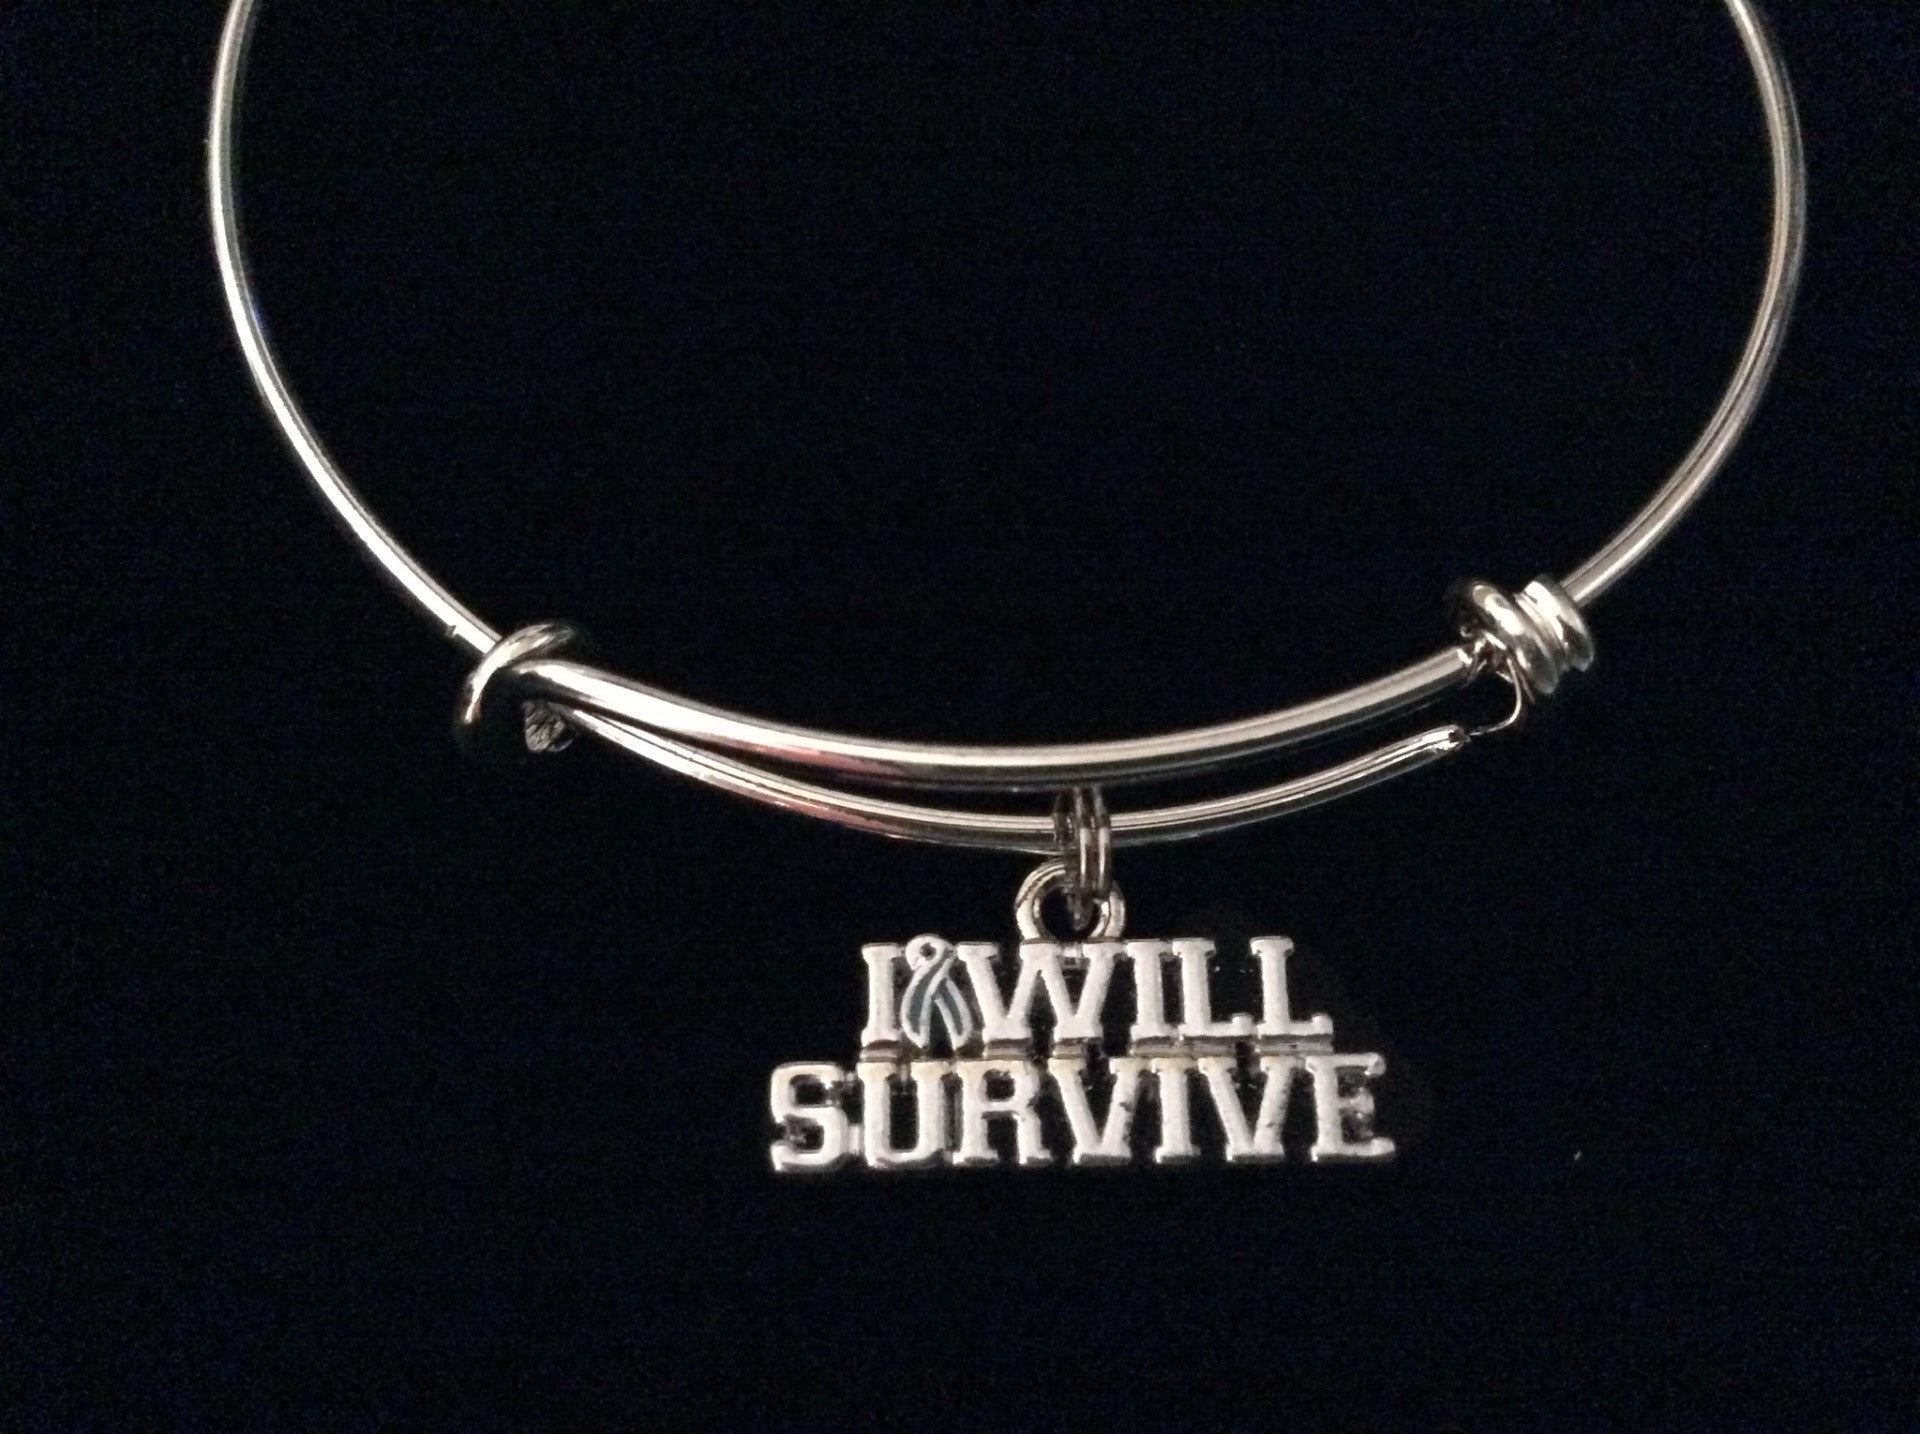 fullxfull listing bracelet with zoom european colon cancer awareness charm silver il lung